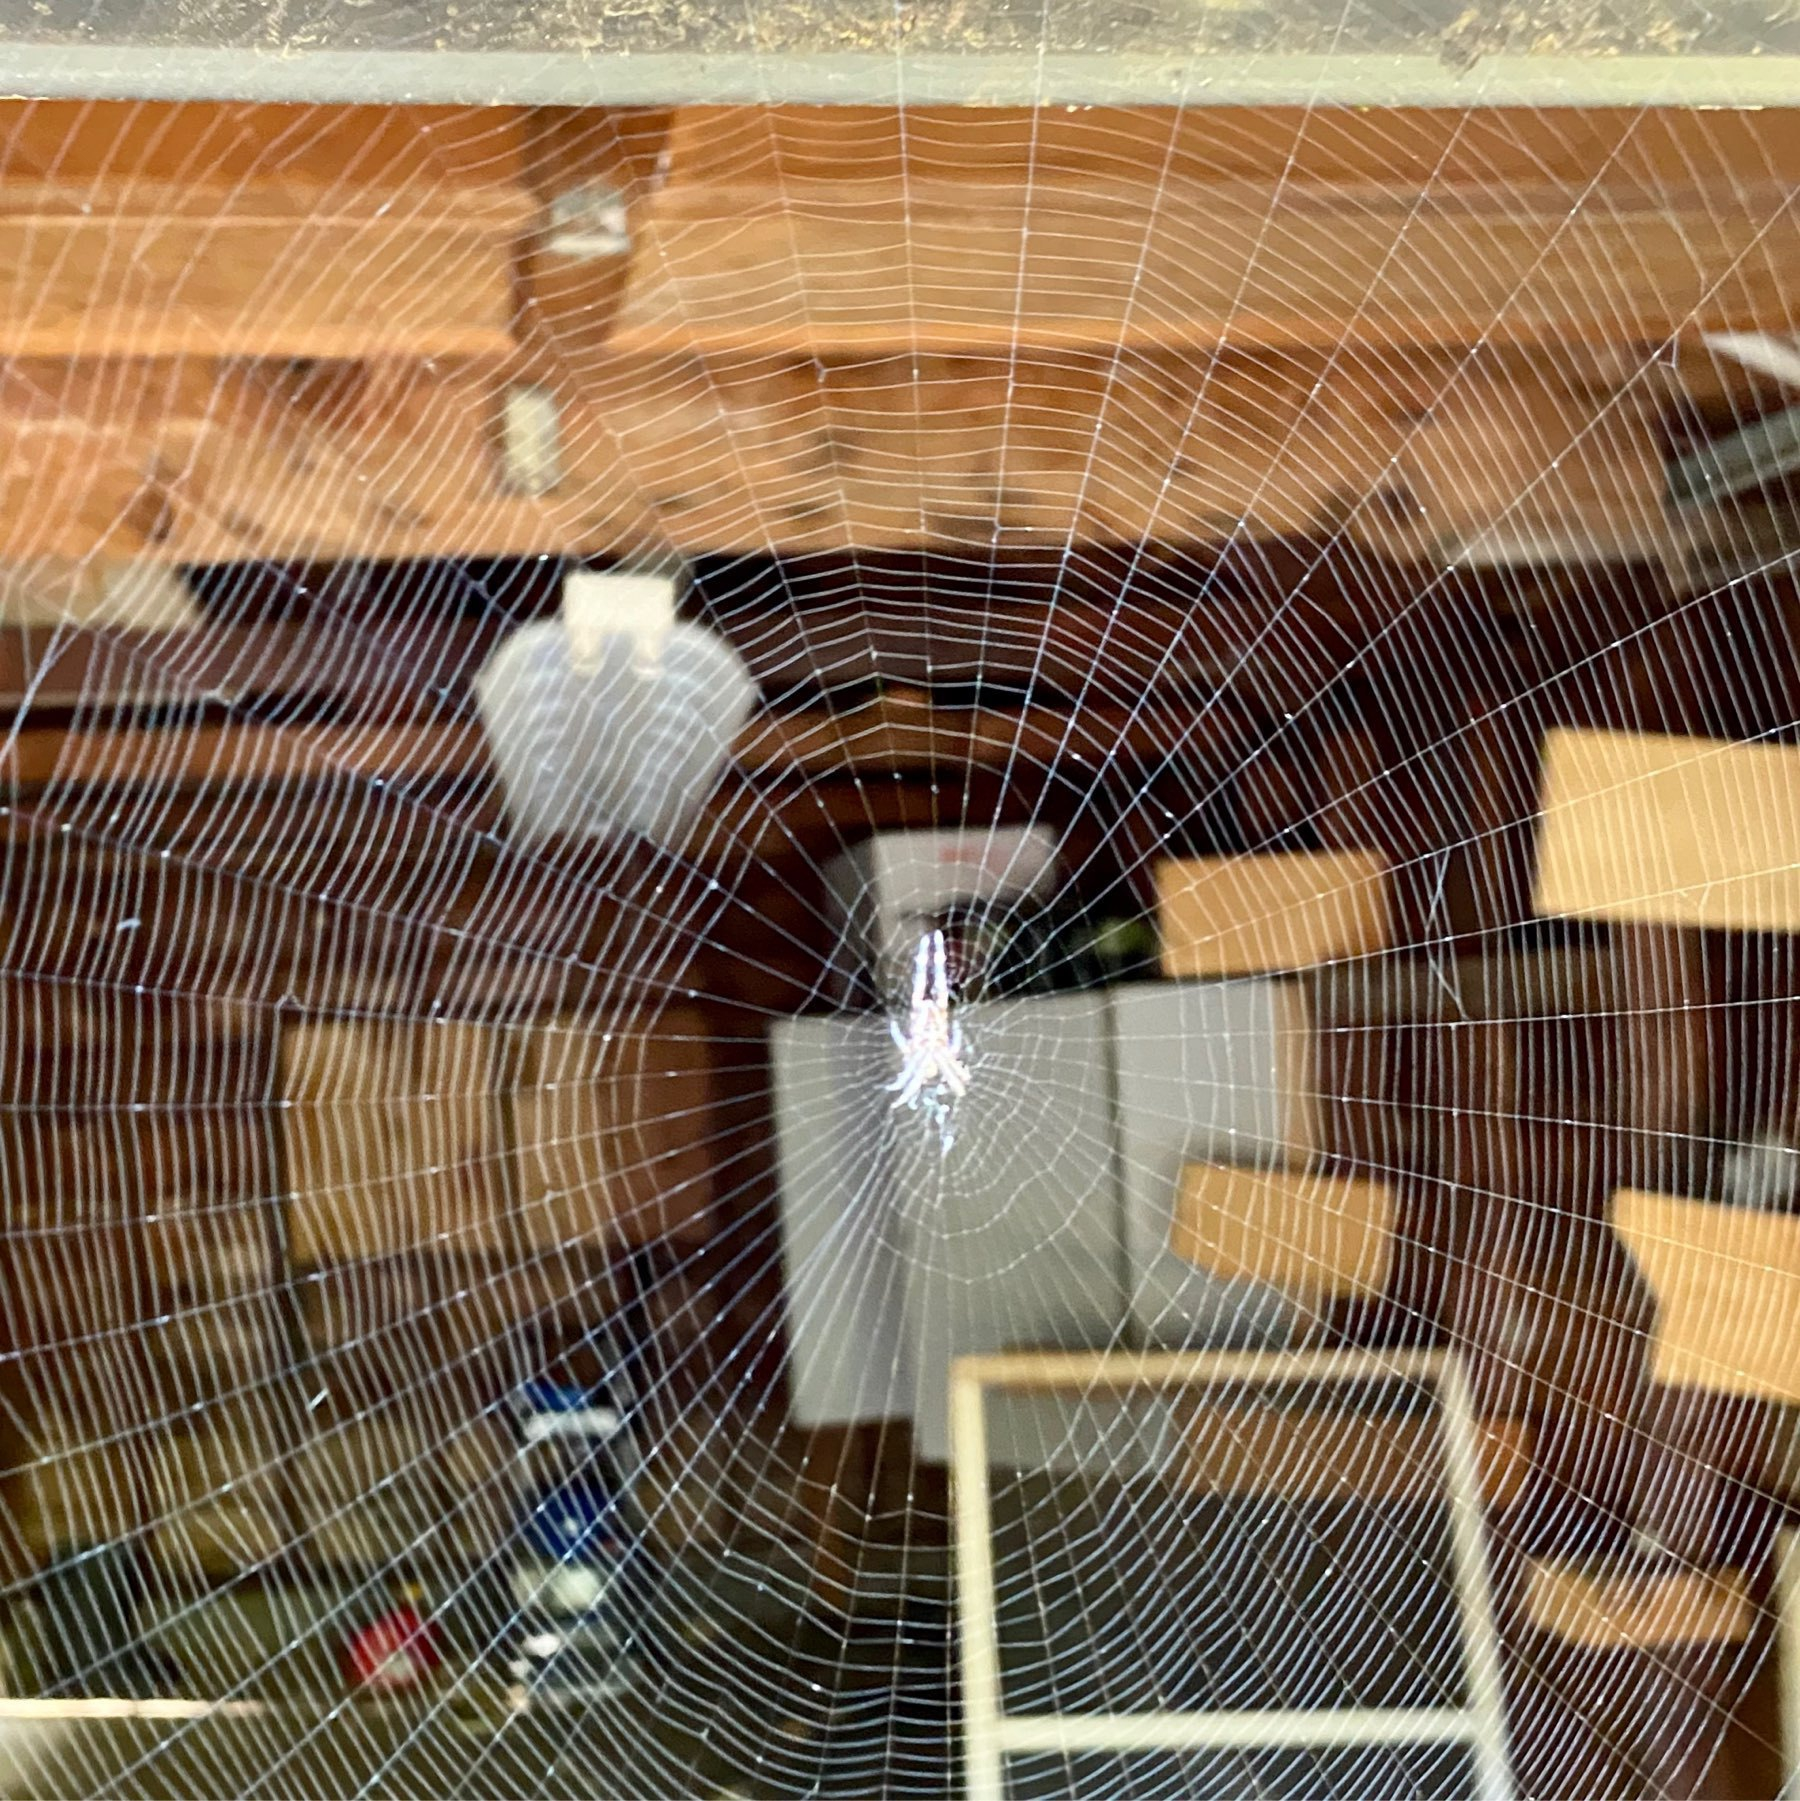 large spider web over the garage entrance